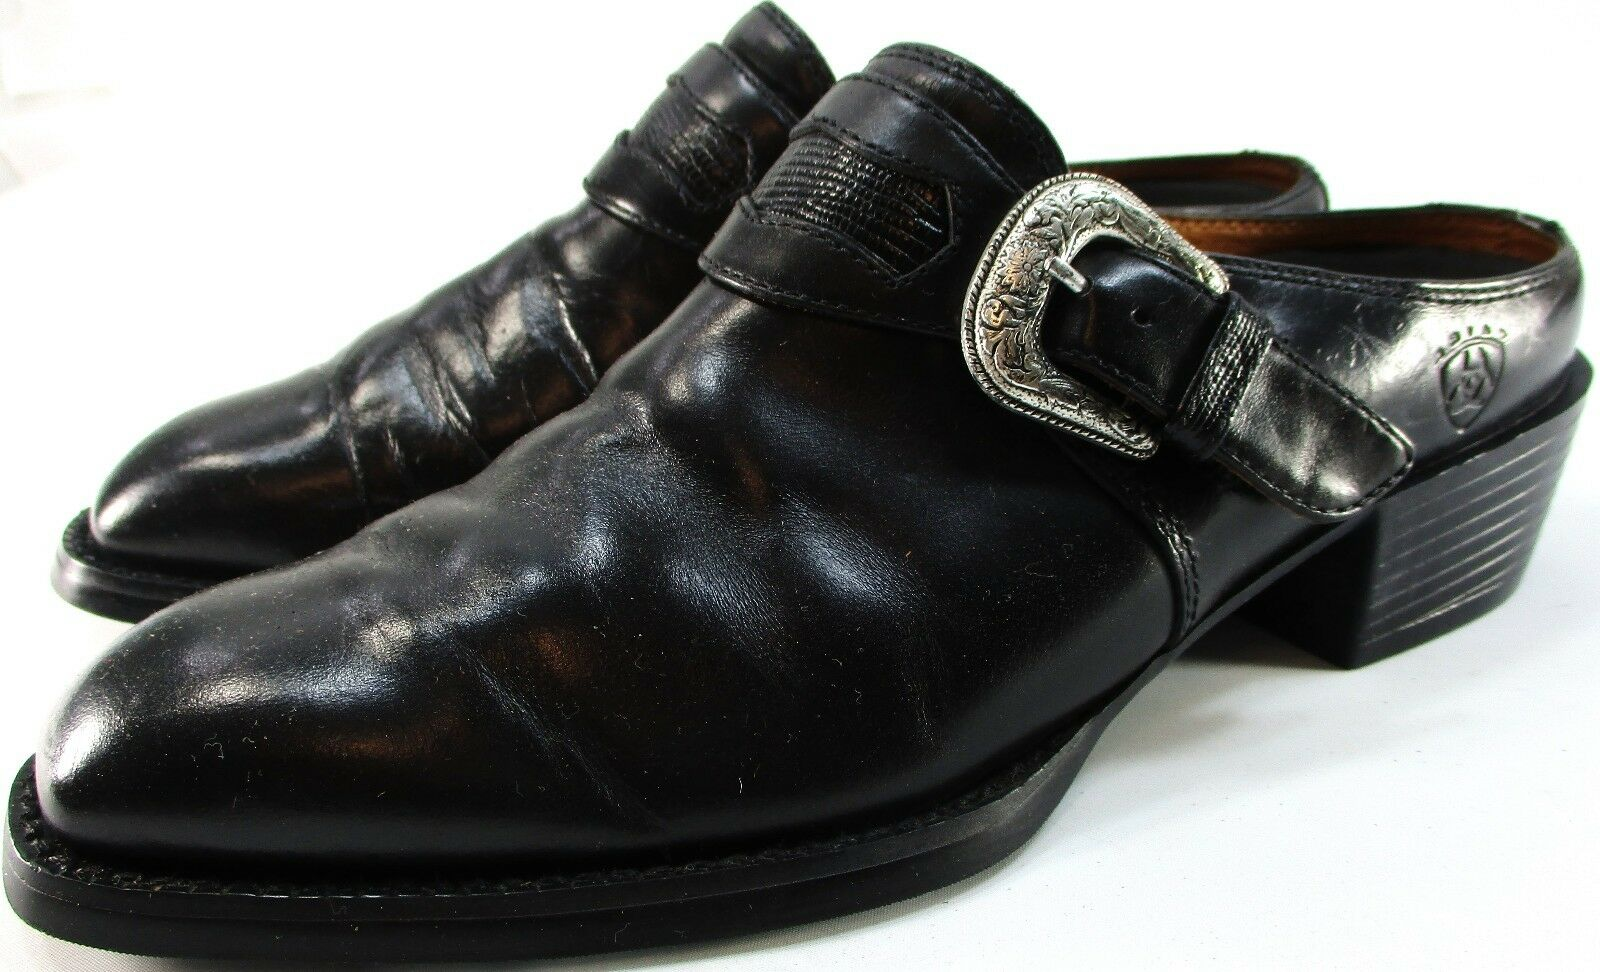 Ariat donna Western Mule avvioies Dimensione 6.58 Euro 36.5 nero Leather